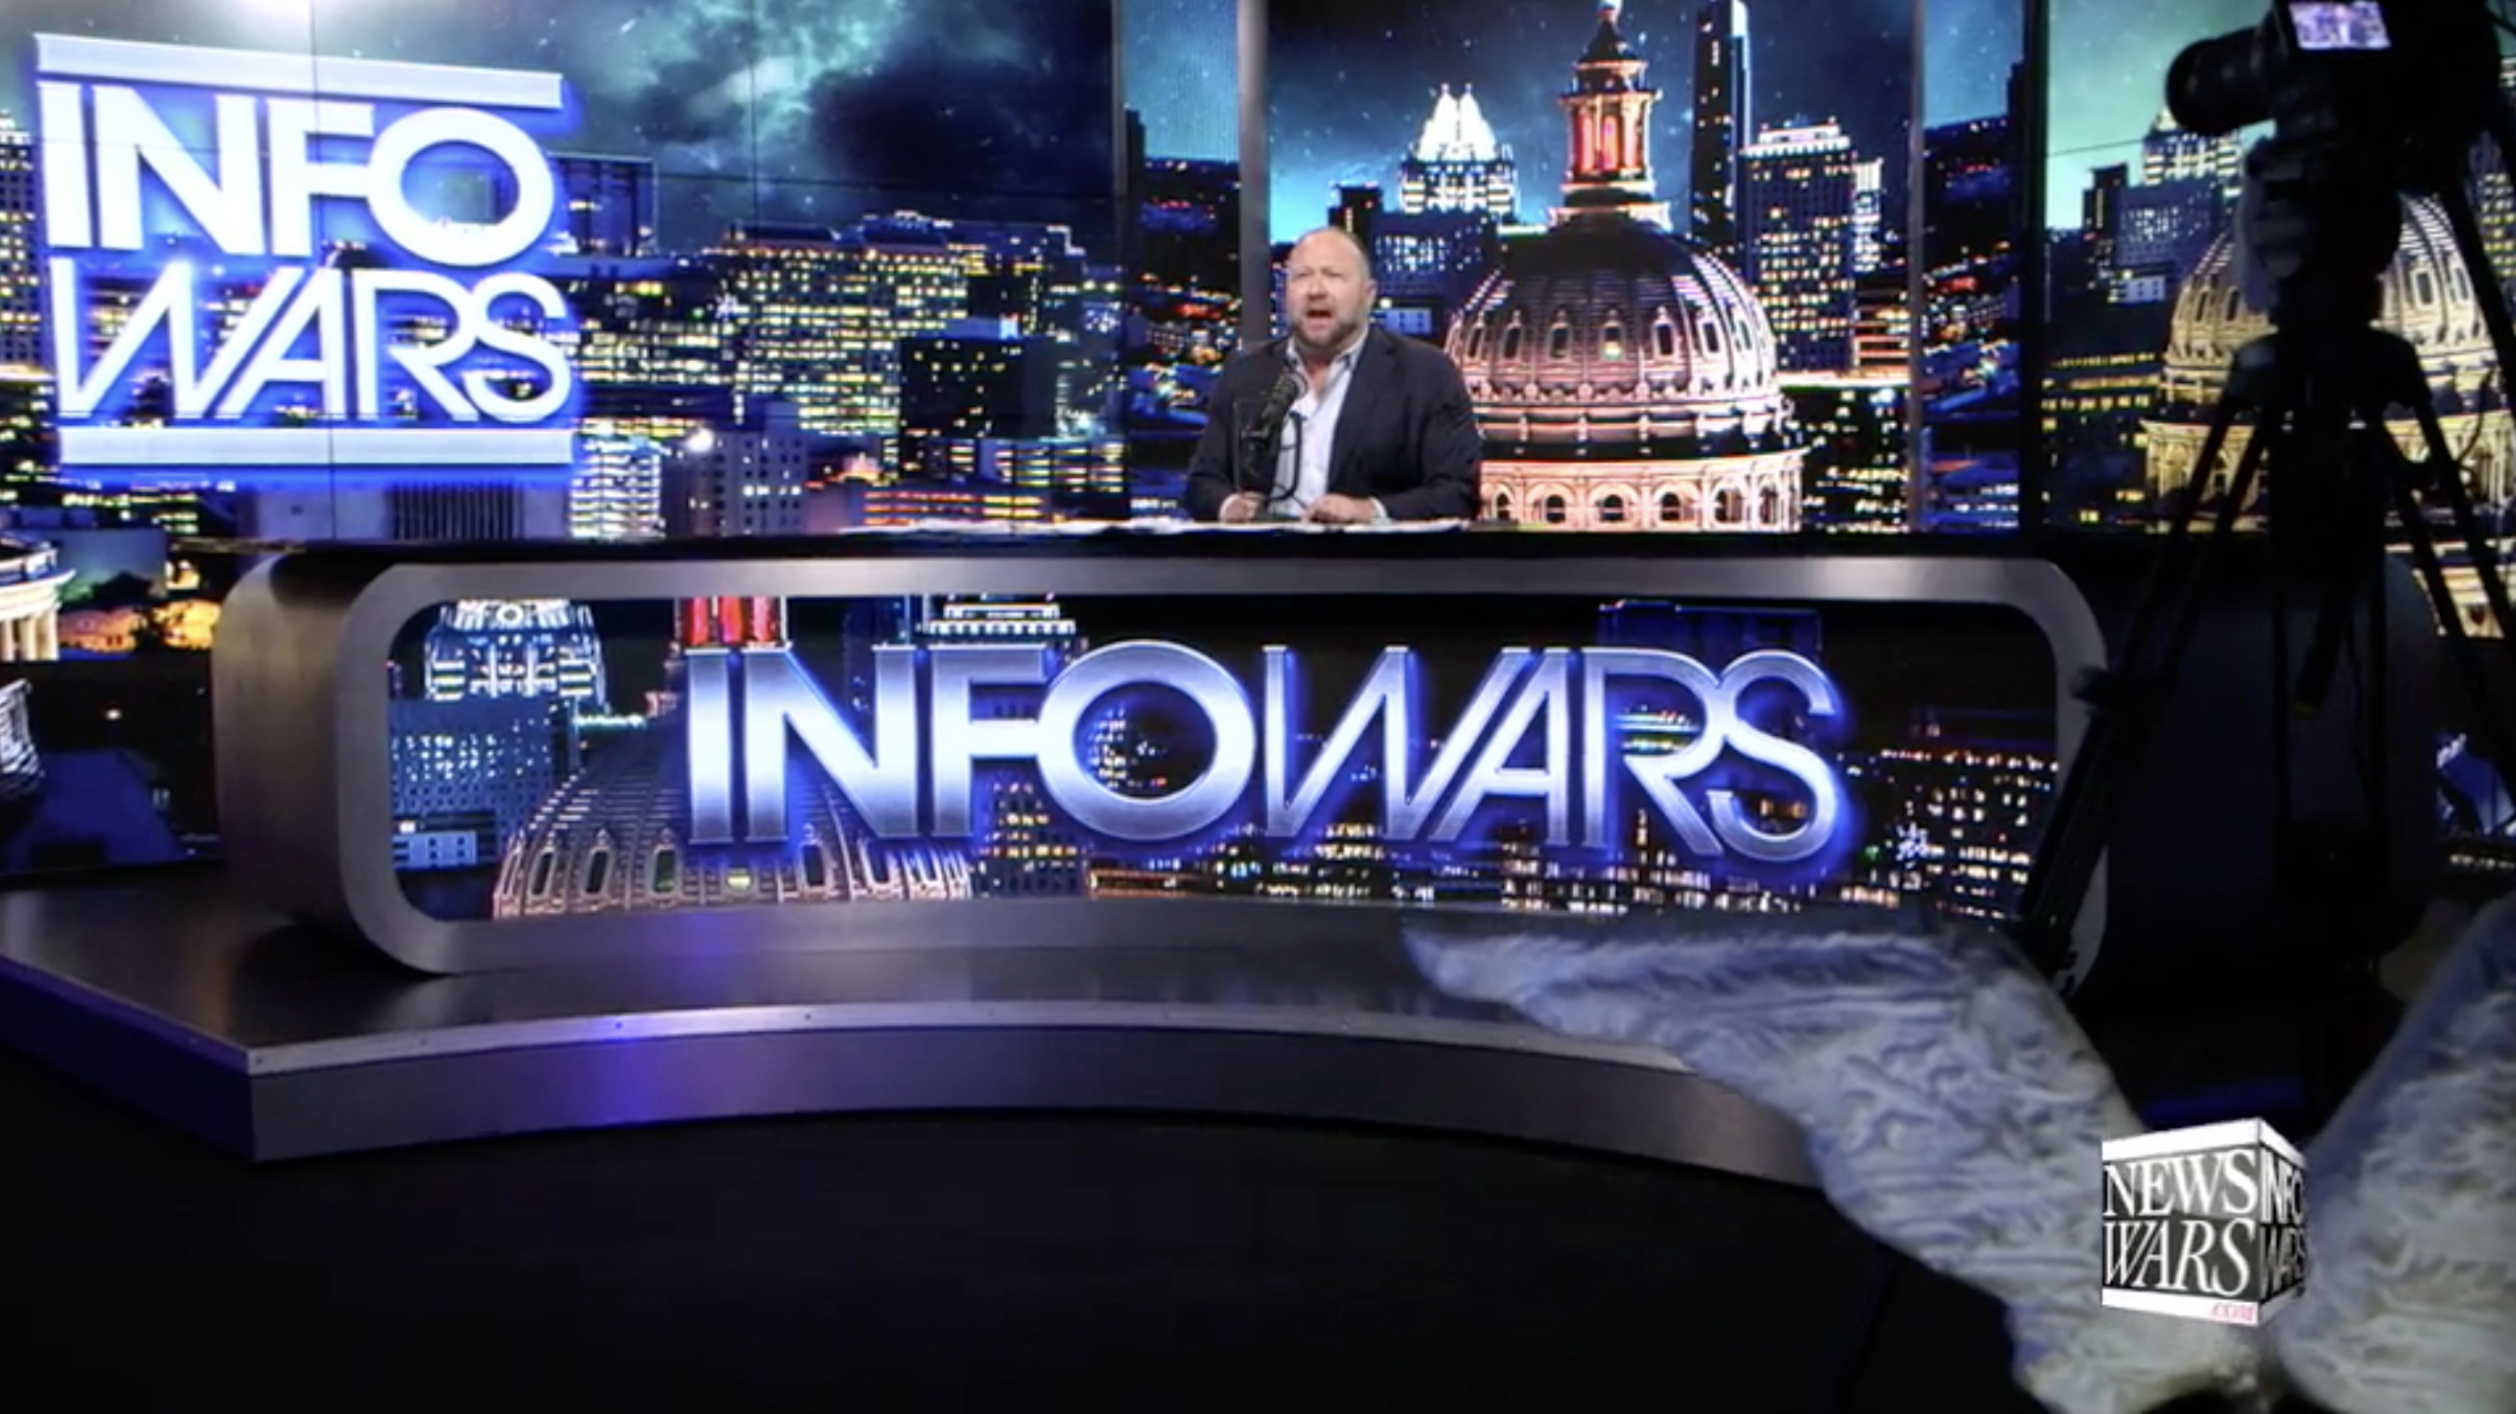 Alex Jones Infowars Studio EXZM September 4th 2020 2